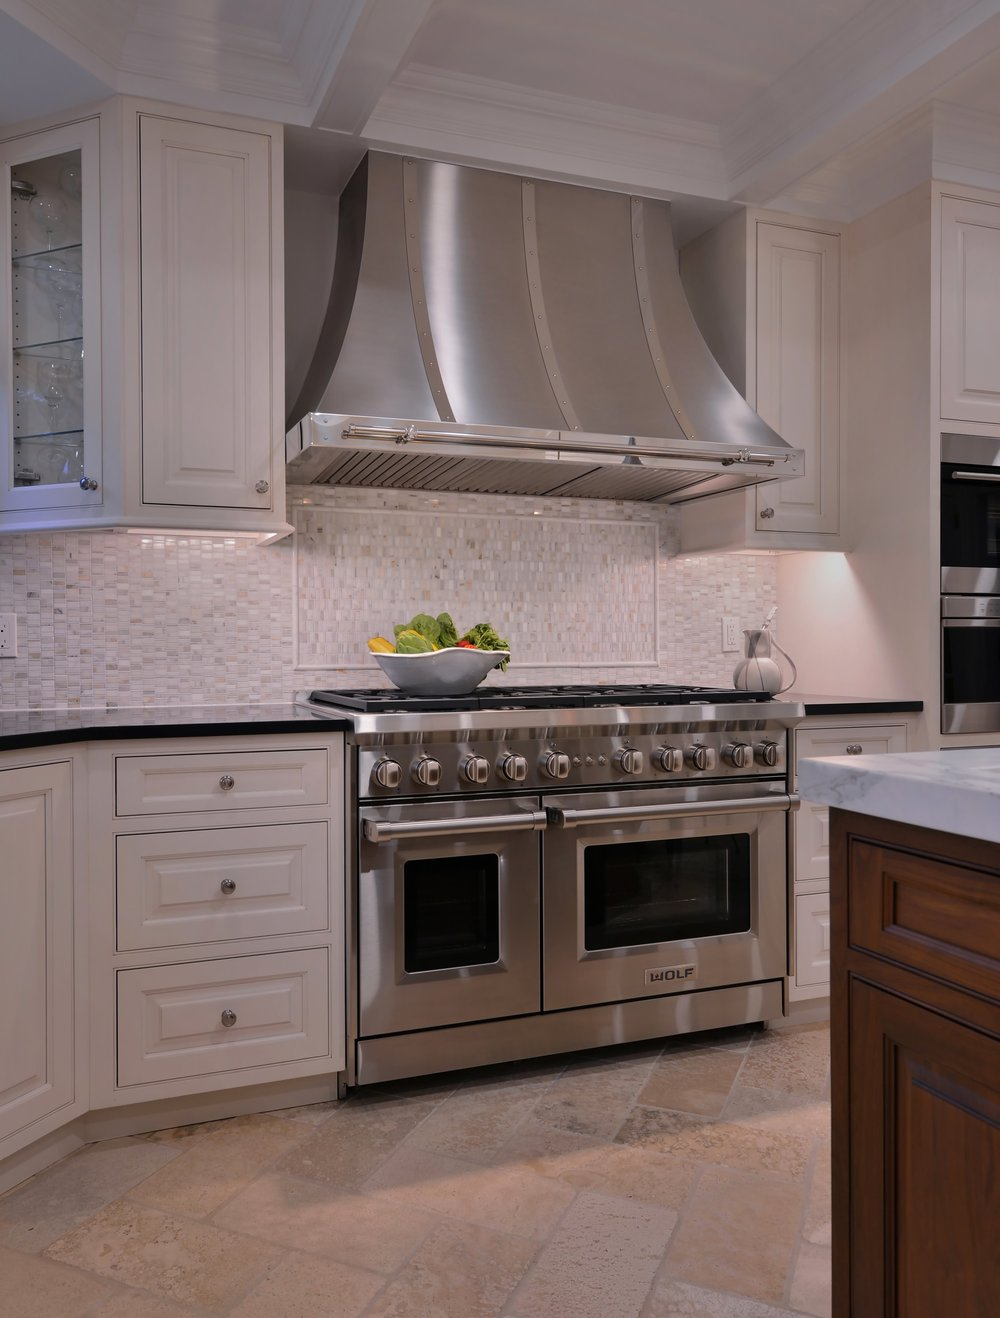 Transitional style kitchen with stainless steel range hood